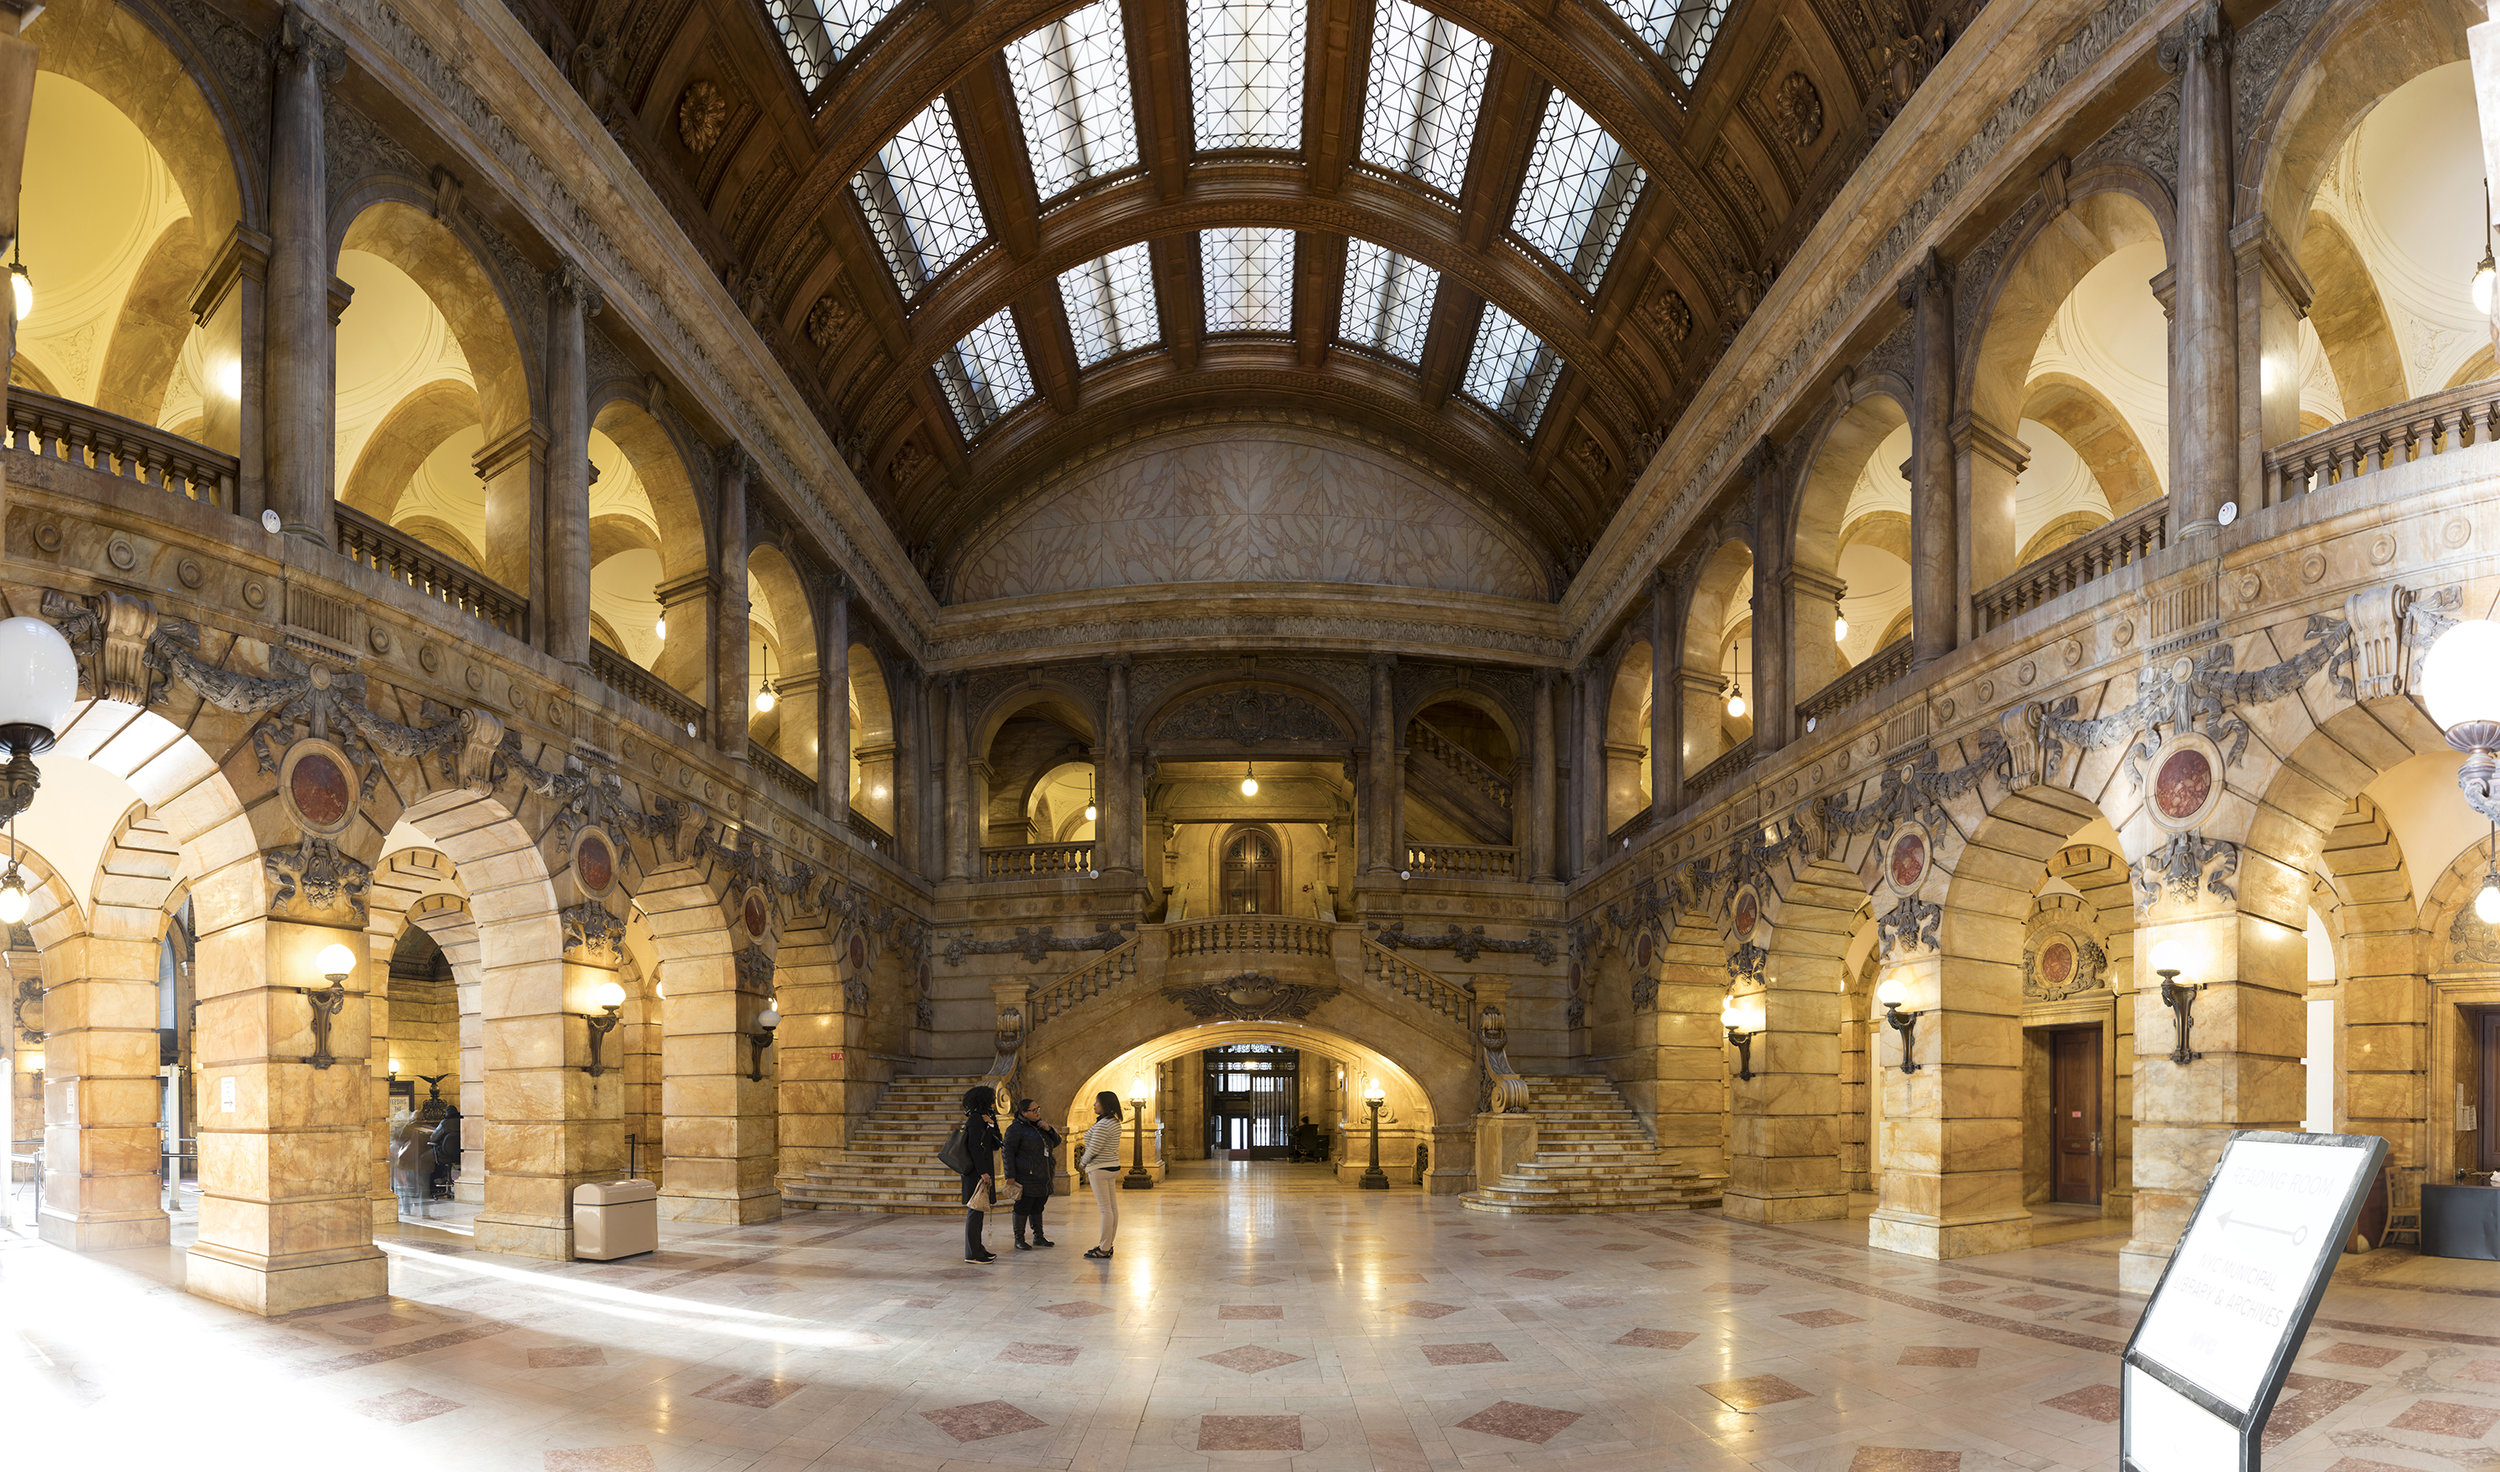 A panoramic image created from 49 separate exposures shows the beautiful rotunda of 31 Chambers Street after repairs